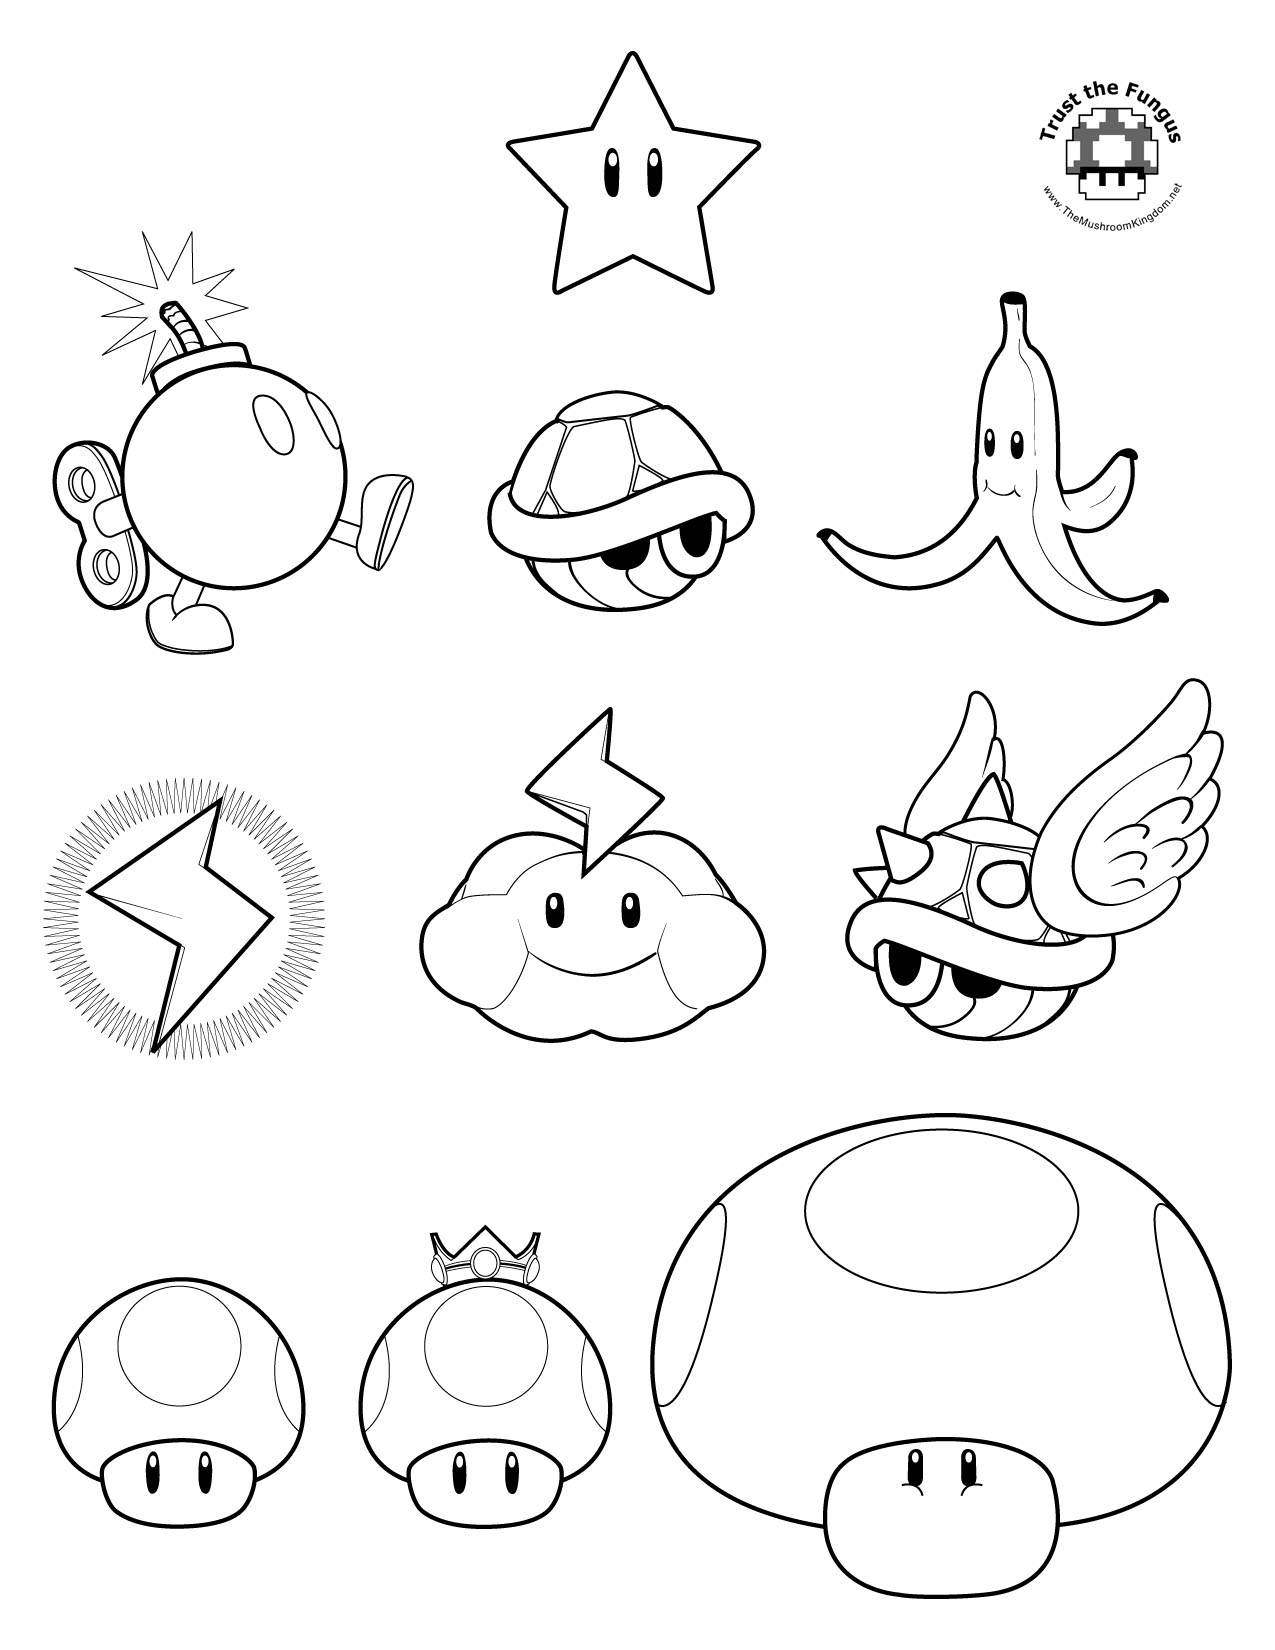 Mario Mushroom Coloring Pages Images amp Pictures Becuo